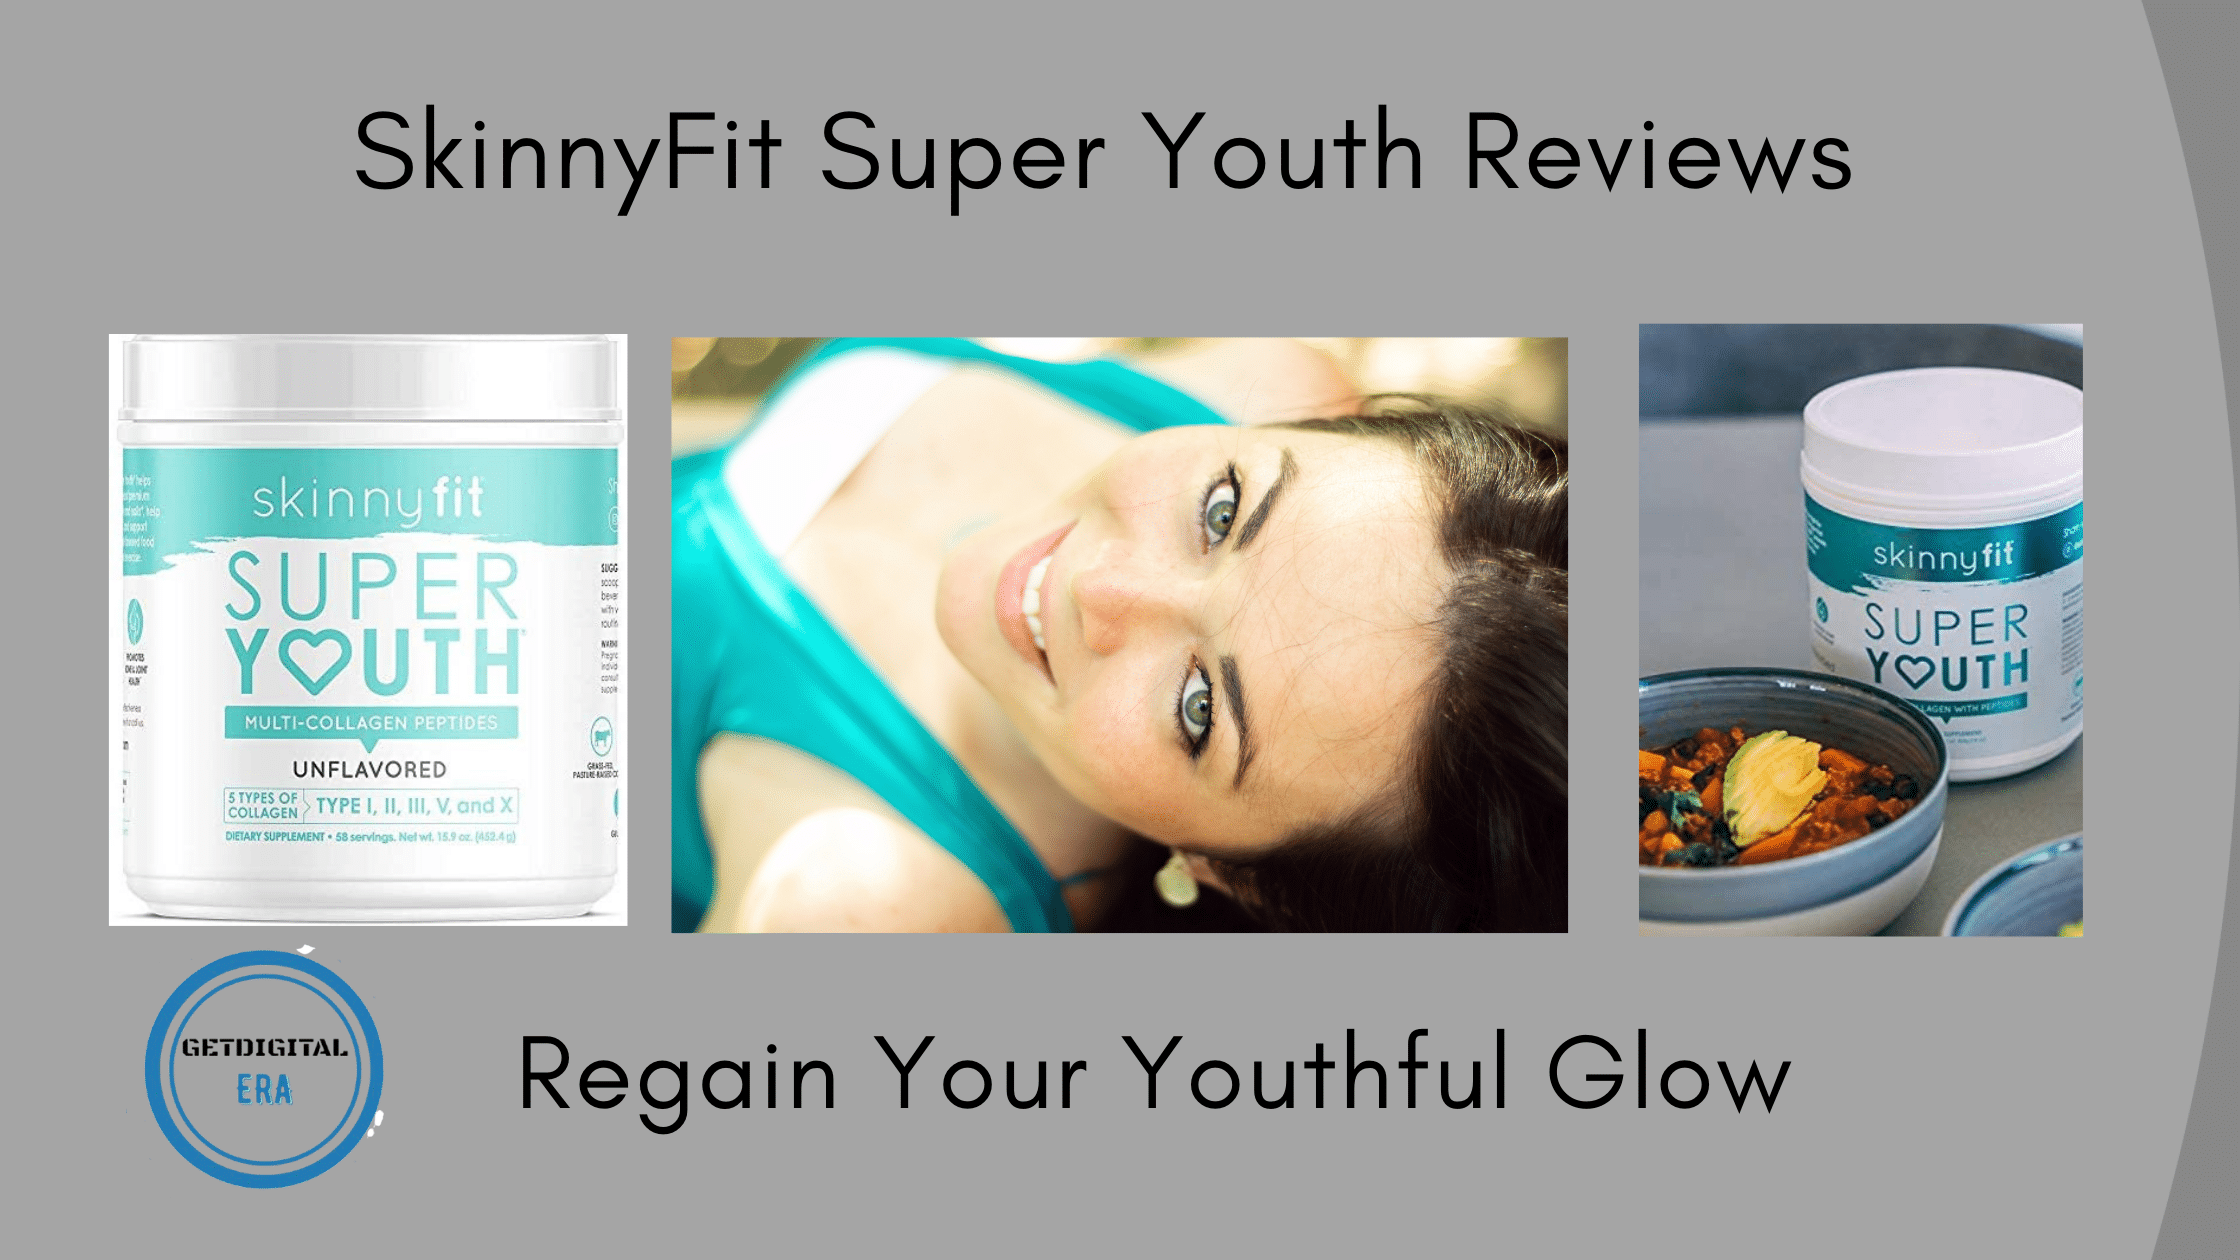 Skinnyfit Super Youth Reviews